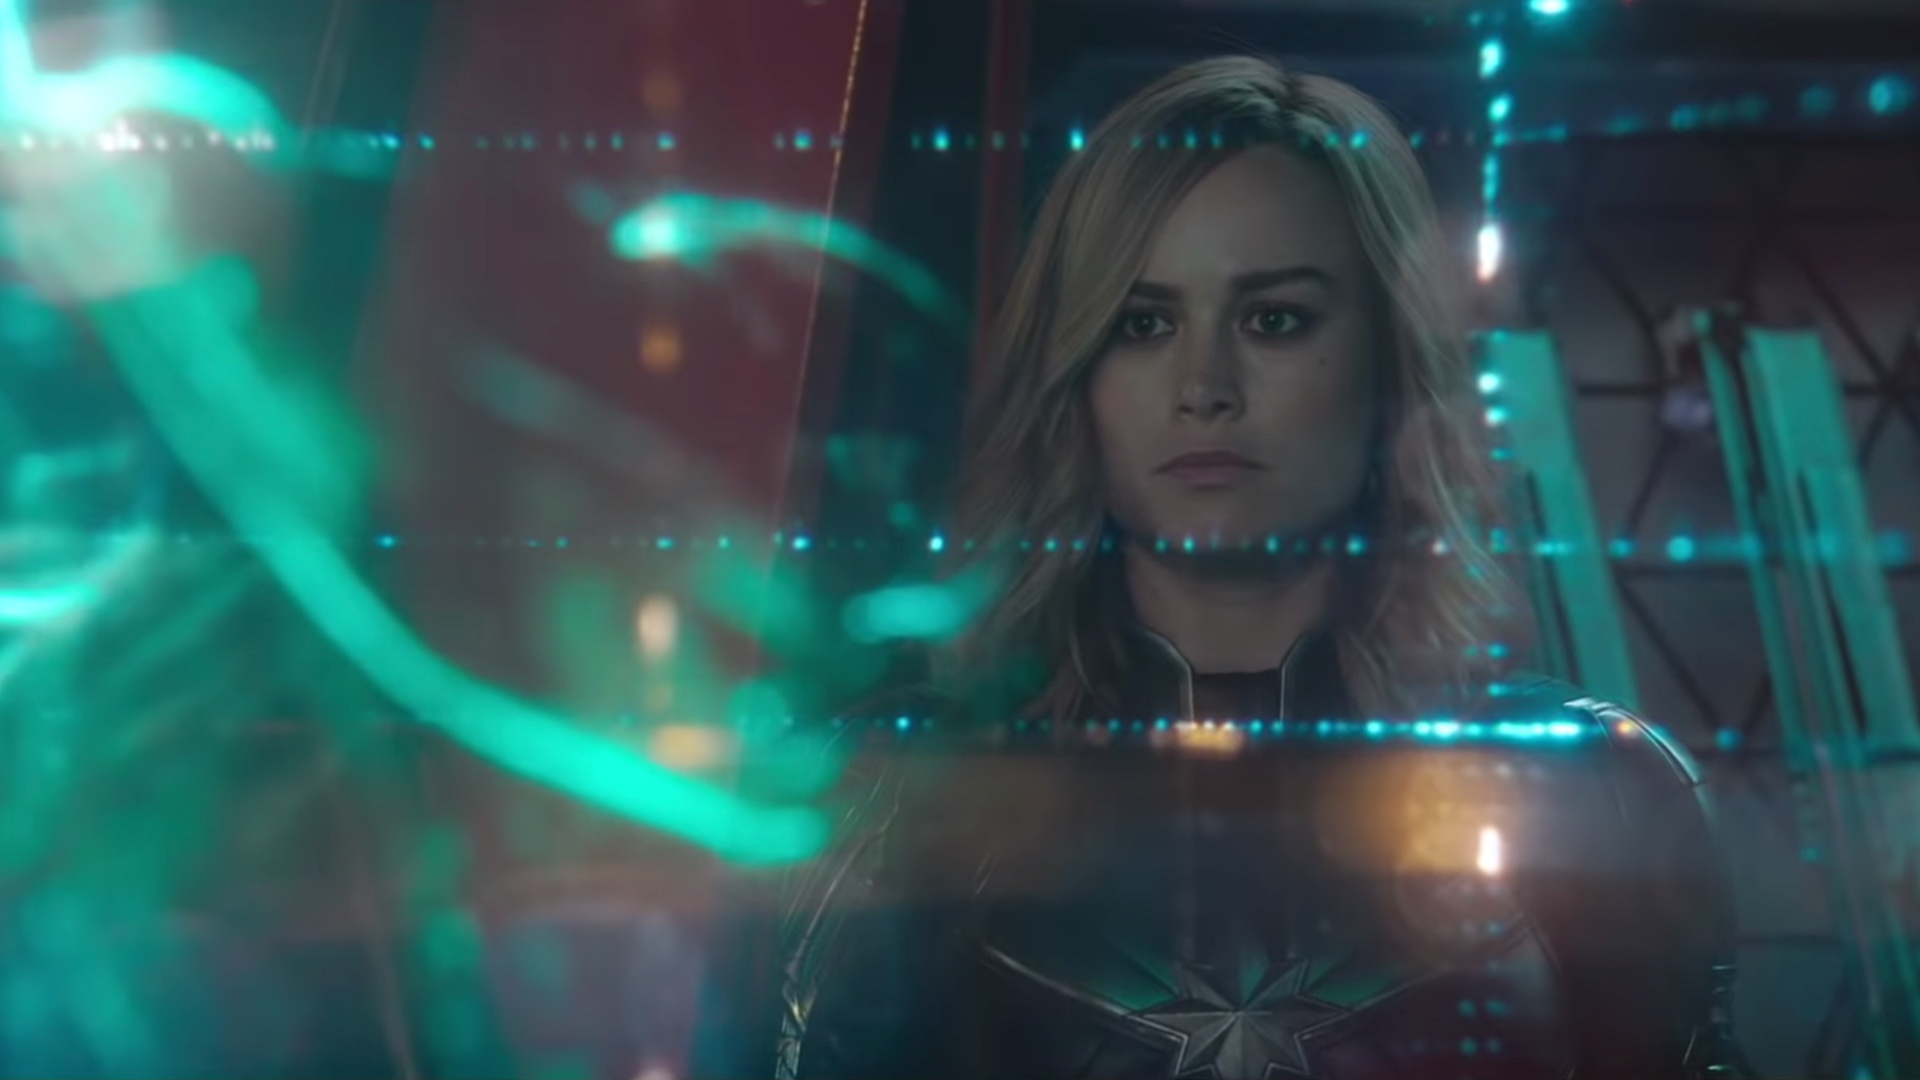 captain-marvel-gets-90s-style-magic-eye-images-and-a-new-cast-featurette-social.jpg